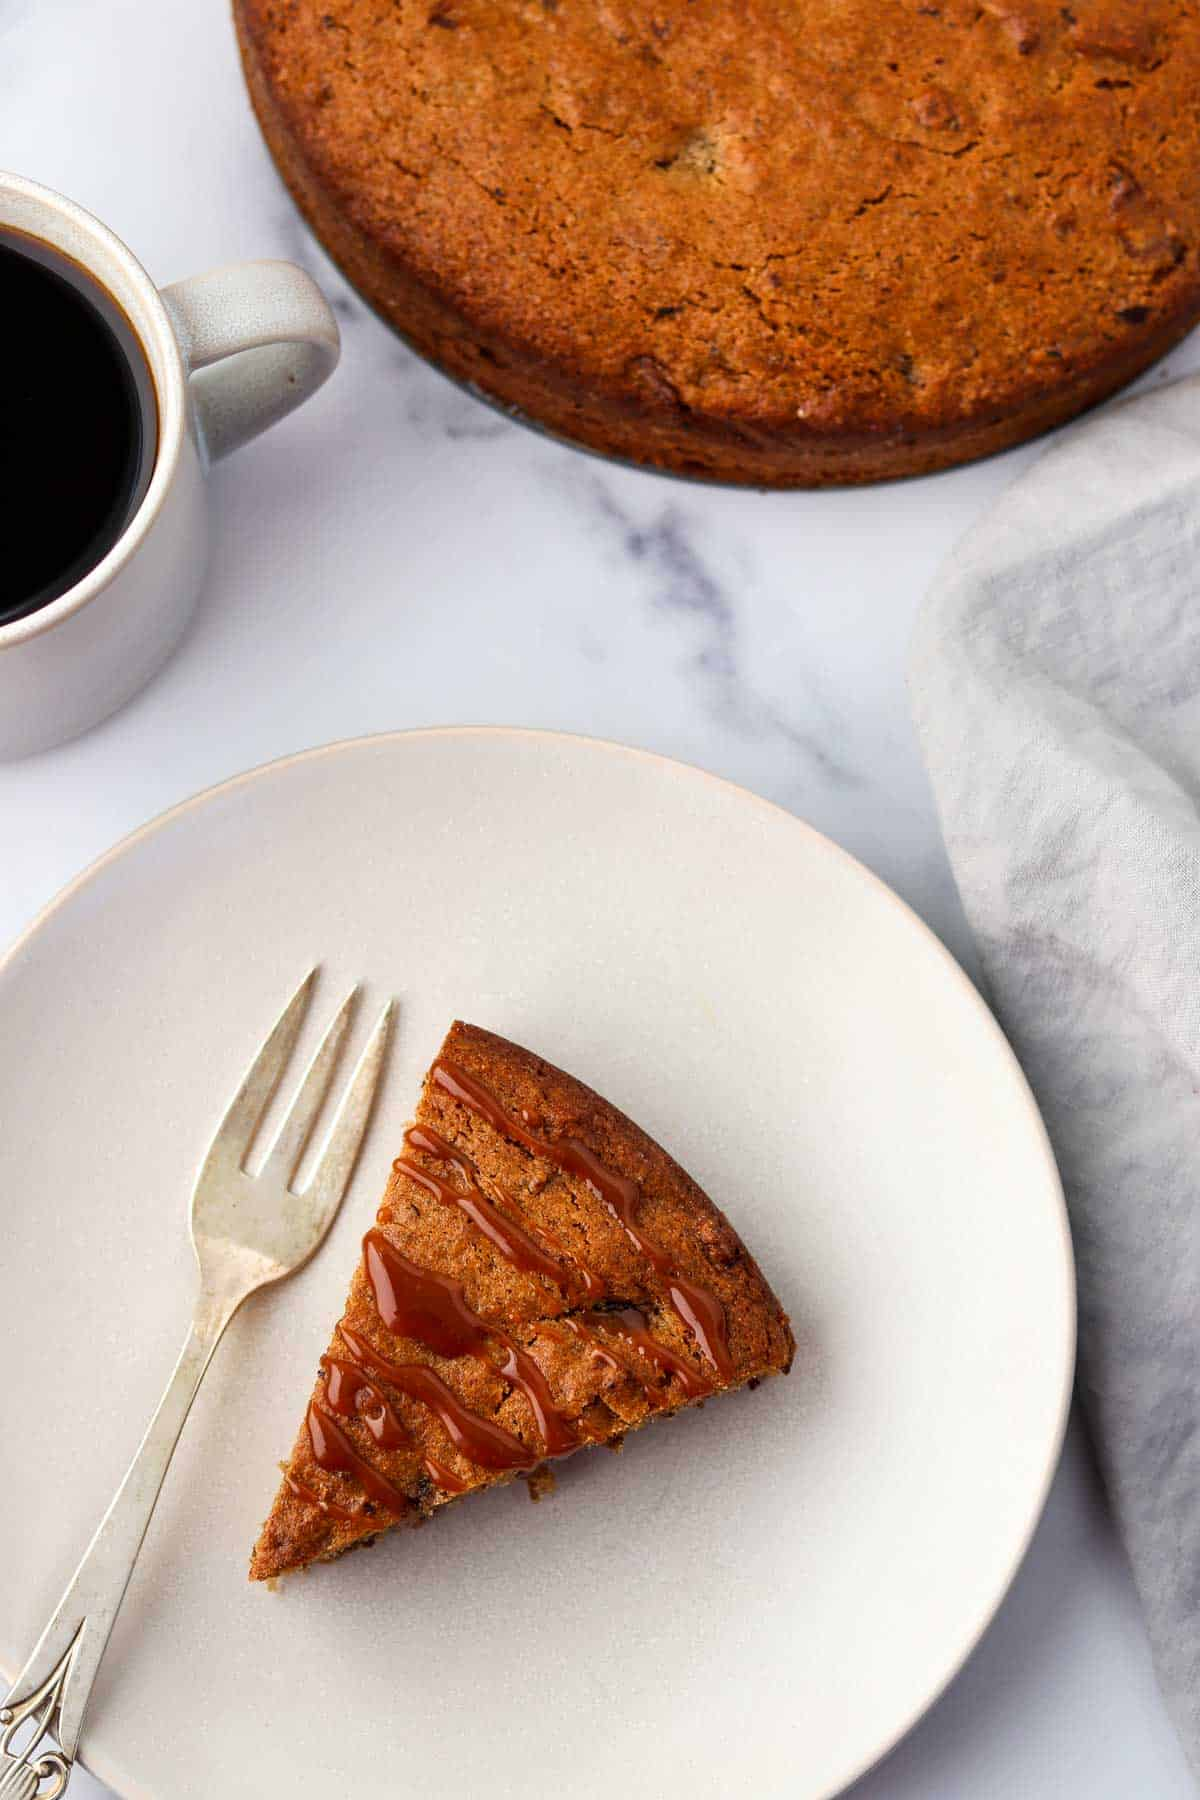 A slice of caramel-drizzled cake on a plate next to a fork and a cup of coffee.